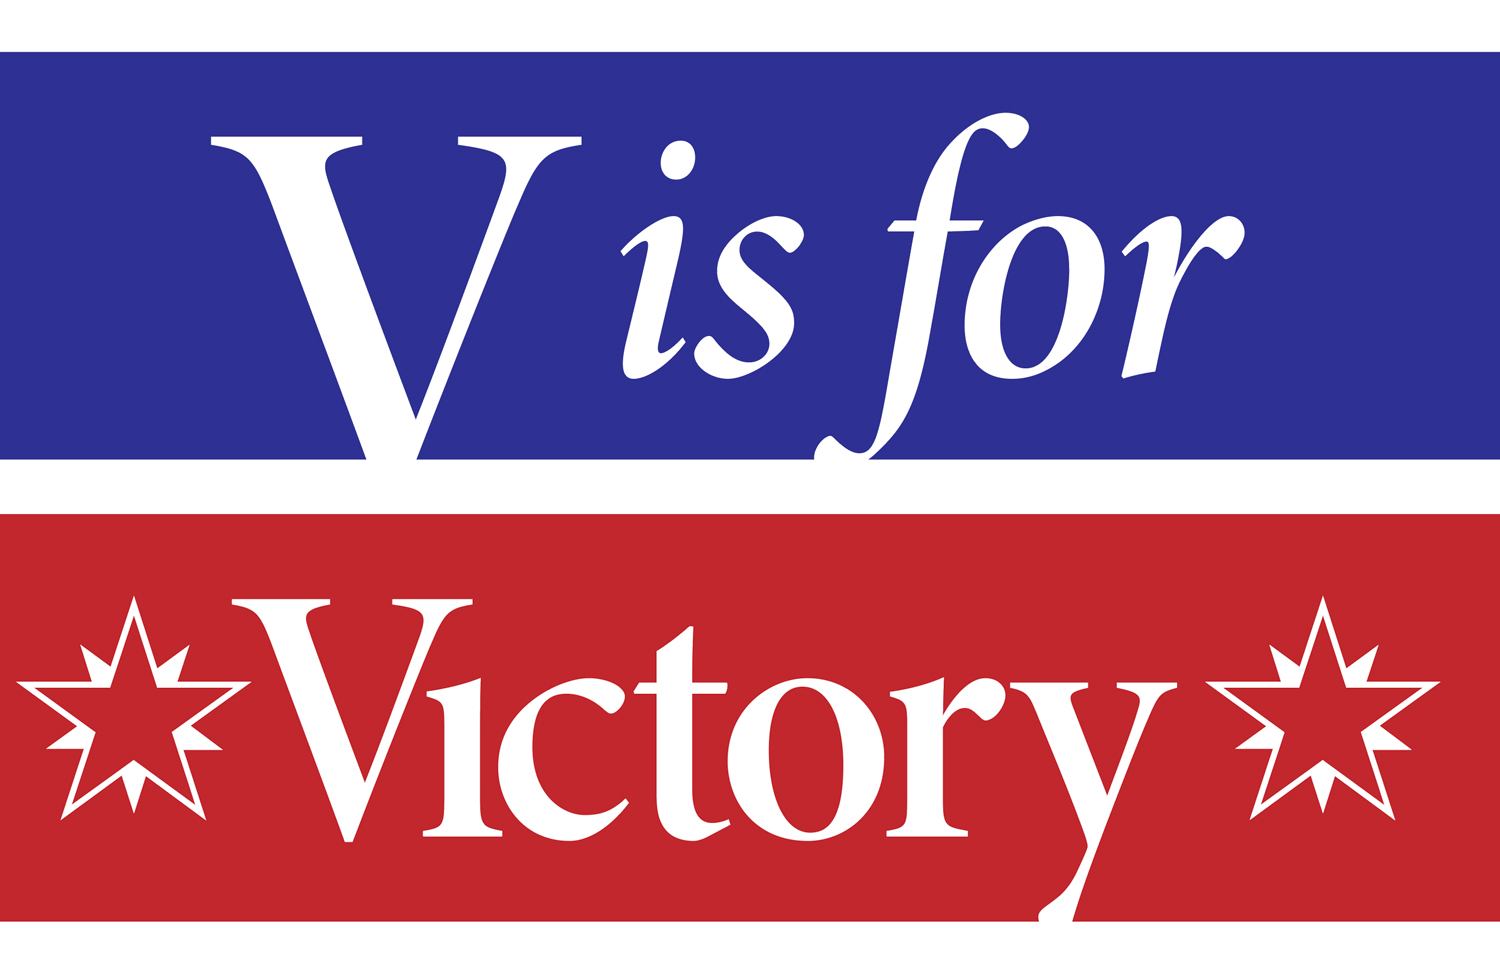 V is for Victory on a blue and red wide striped field.